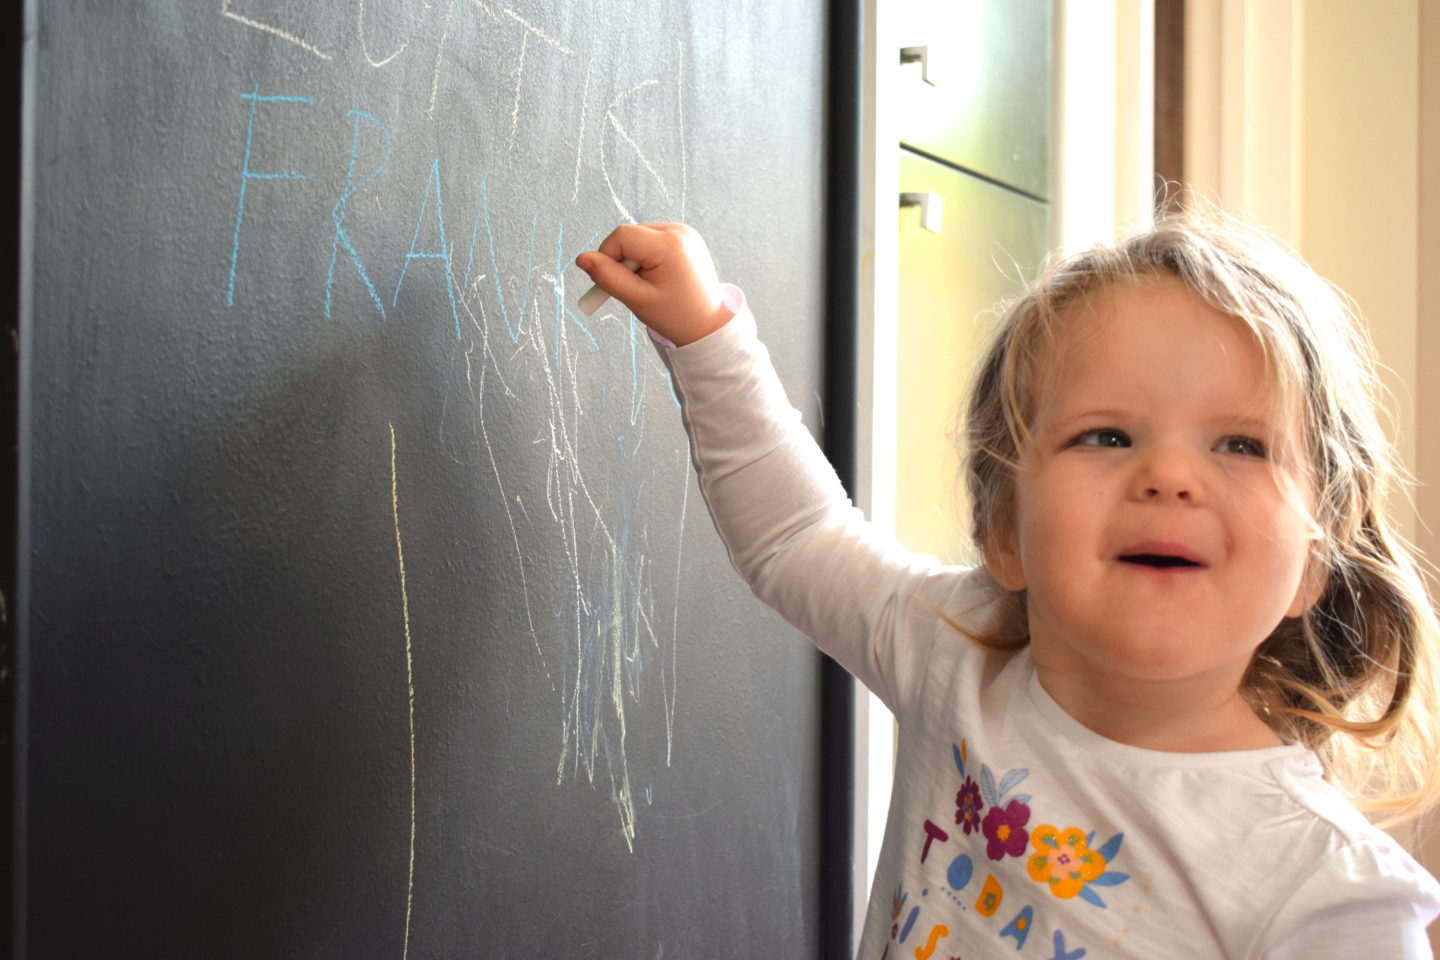 Toddler writing on blackboard wall at Center Parcs Elveden Forest